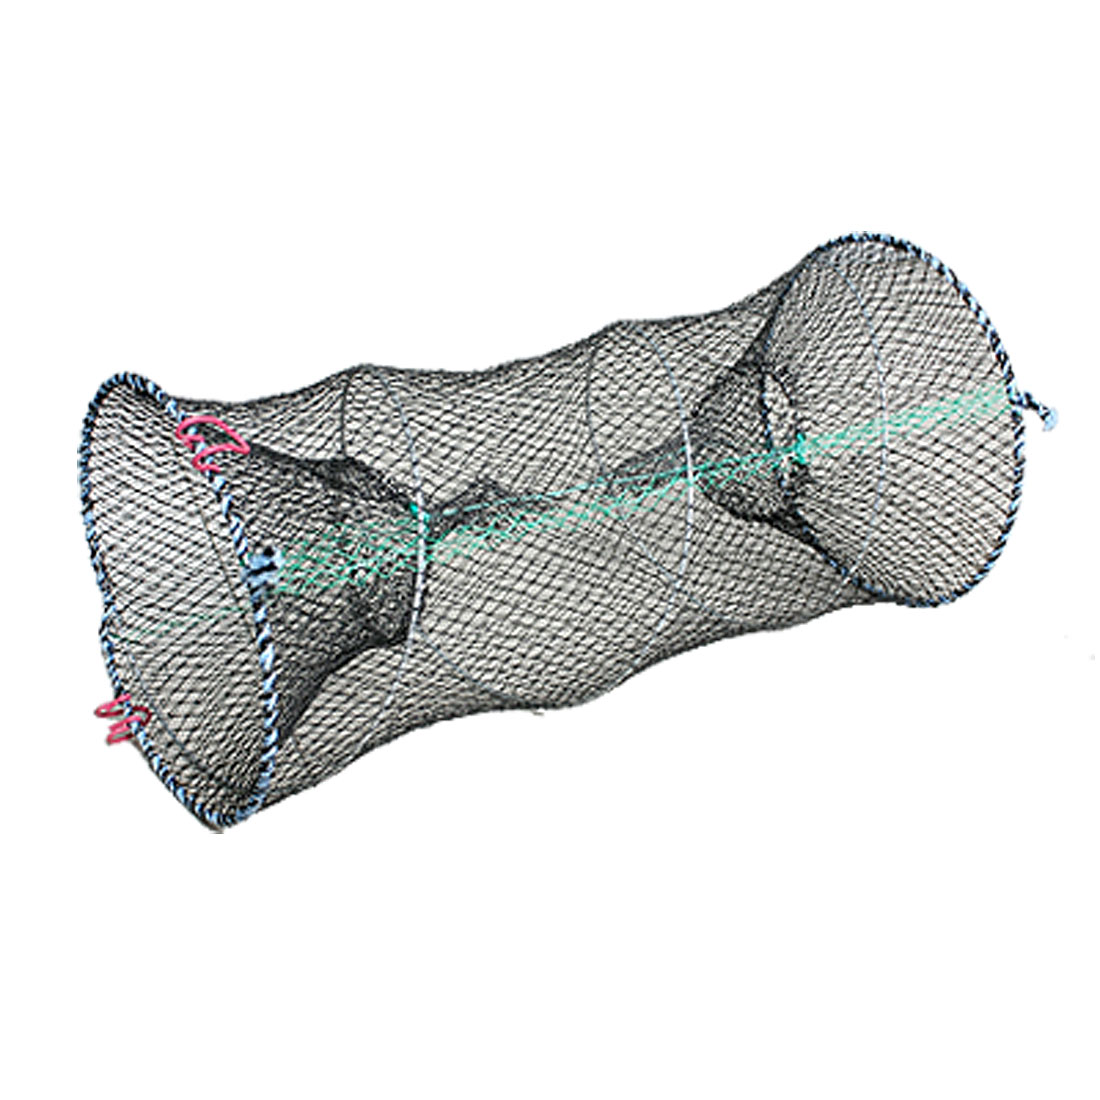 Black Mesh Cylindrical Double Entrance Fish Shrimp Lobster Crab Net